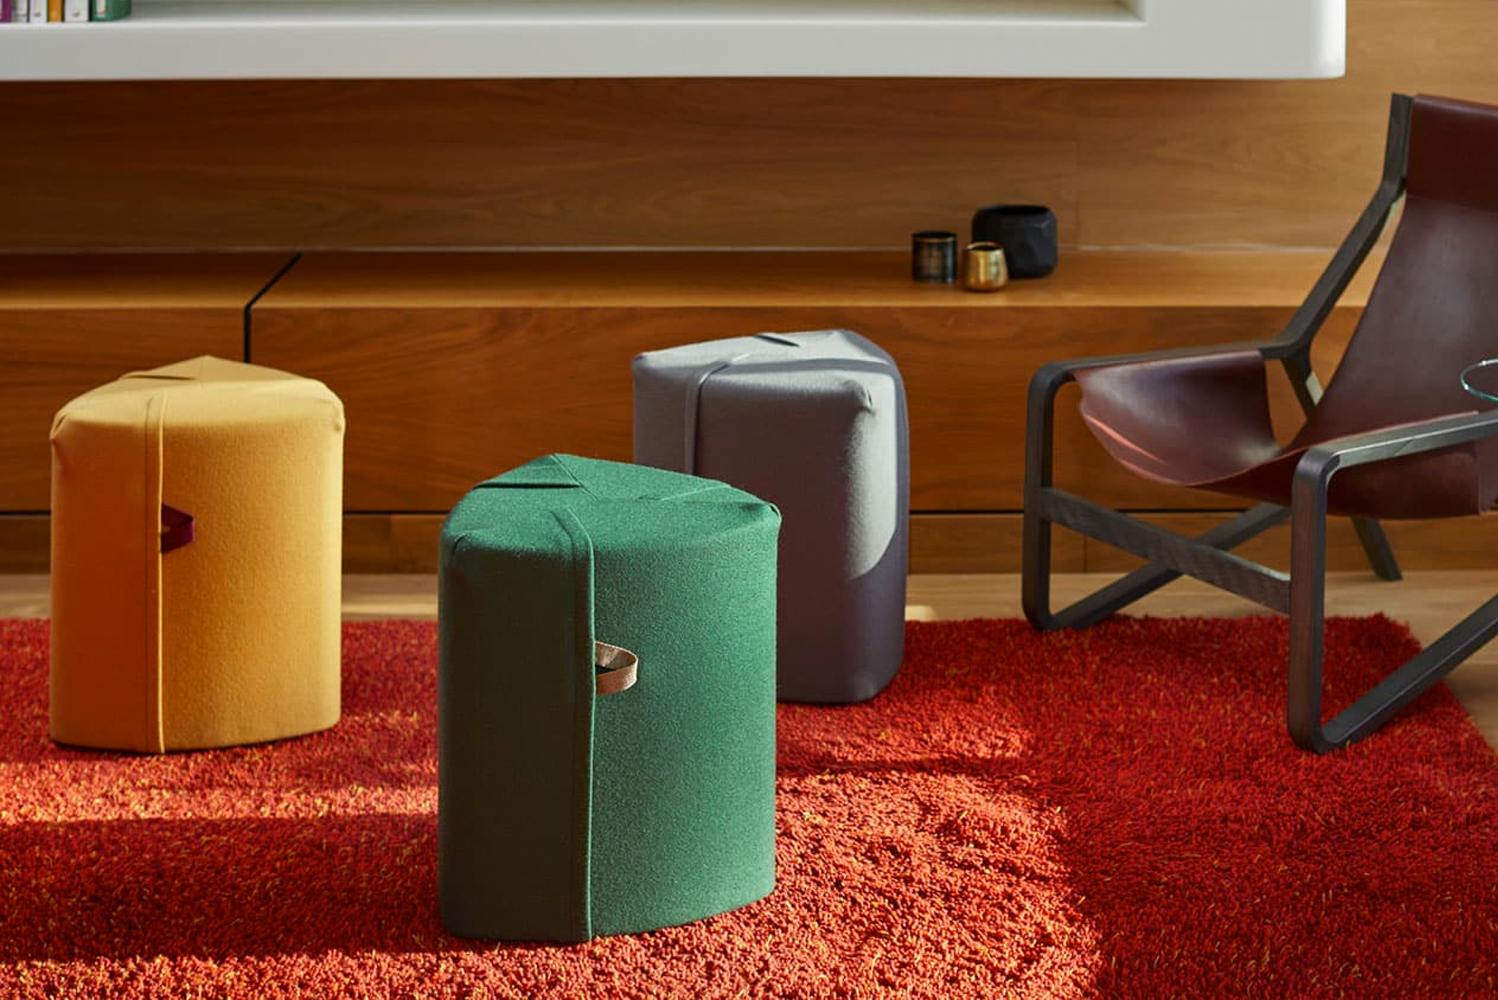 The Campfire Pouf is an adaptable seating option that is ideal for office settings where collaboration is part of the work environment.